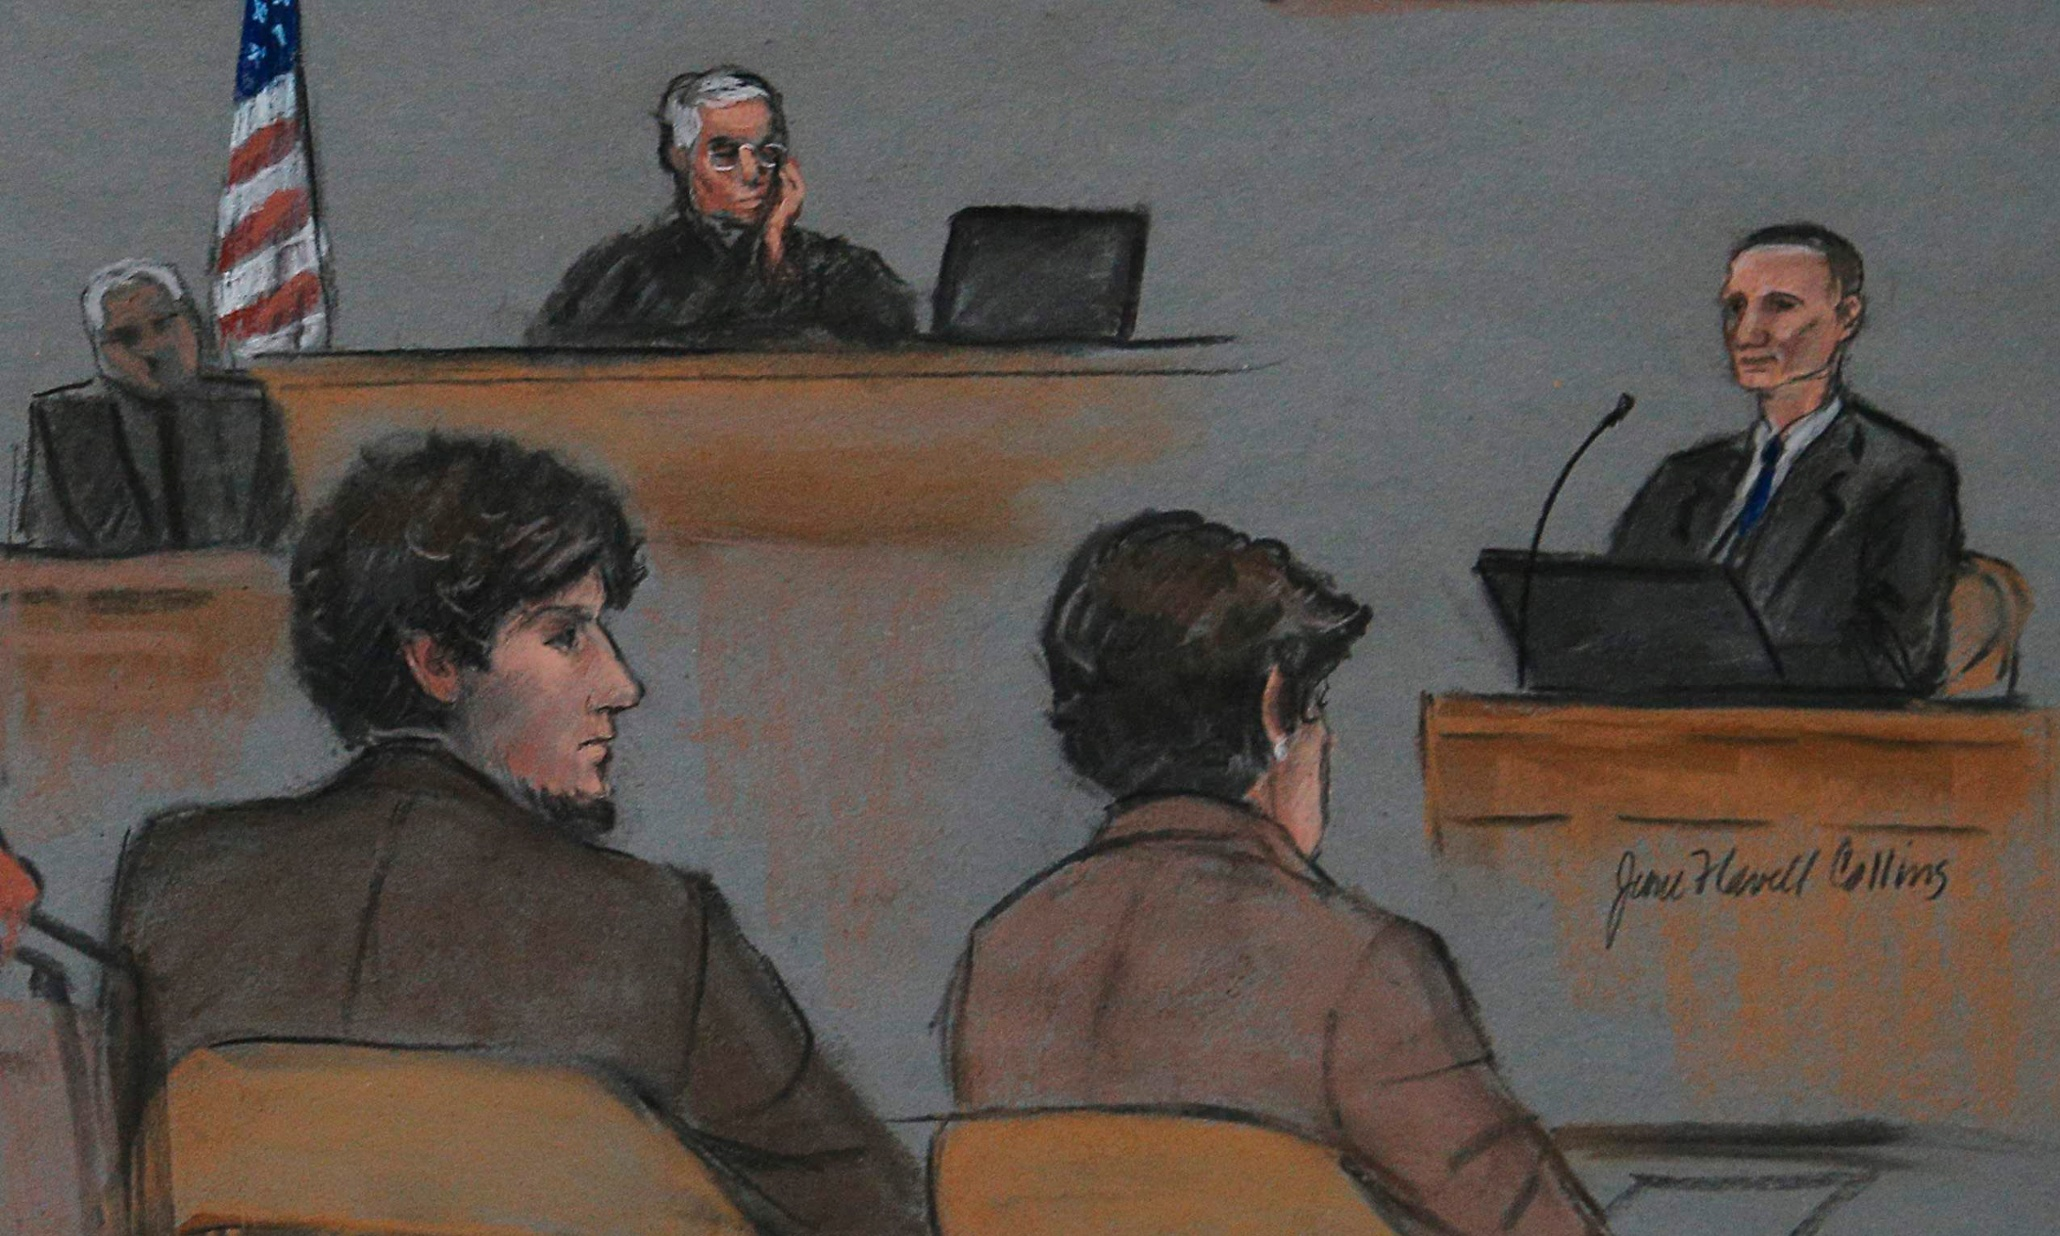 Boston Marathon victim's father testifies at trial: 'We were unlucky that day'